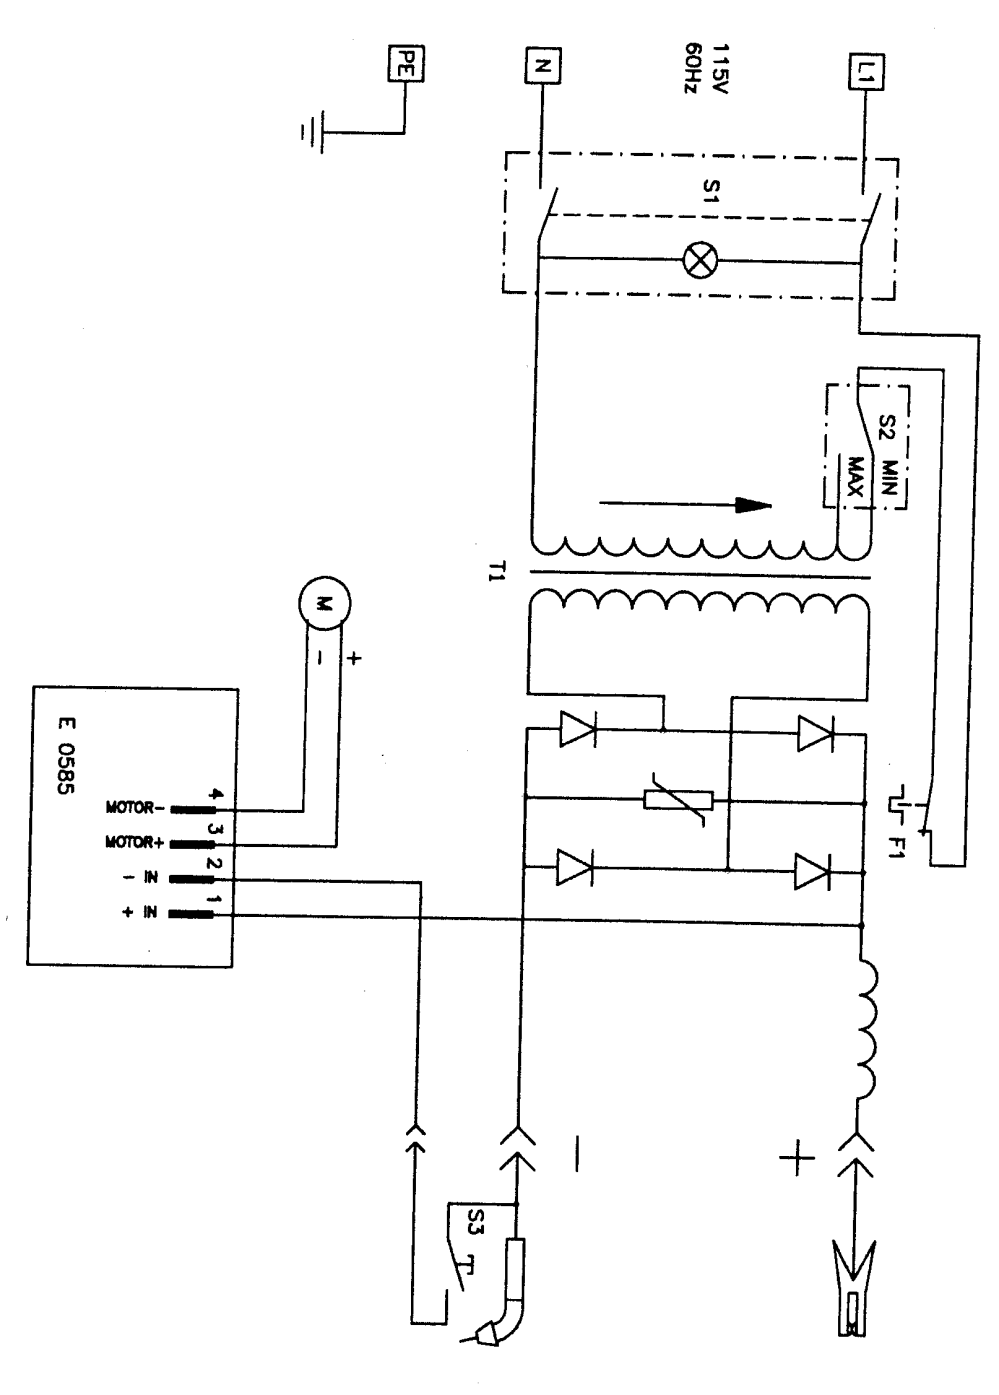 medium resolution of craftsman welder wiring diagram wiring diagram toolbox craftsman welder wiring diagram